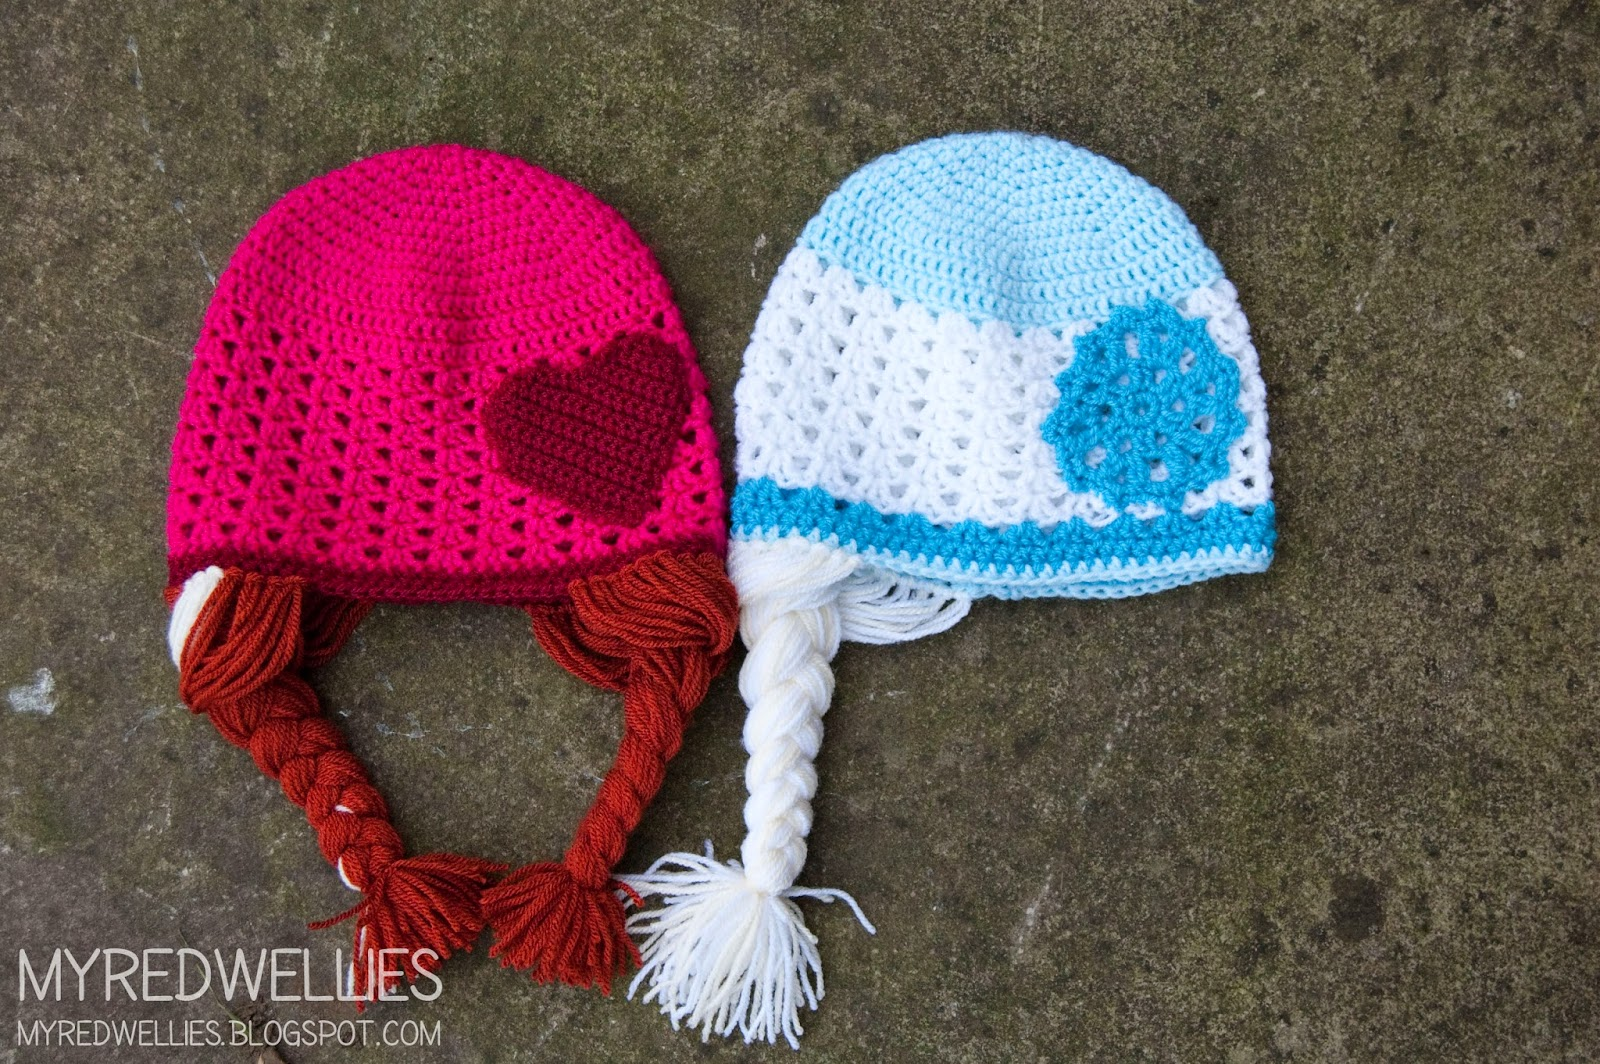 Crochet Hat Patterns Elsa : My Red Wellies: Anna & Elsa crochet hats - A free Crochet ...